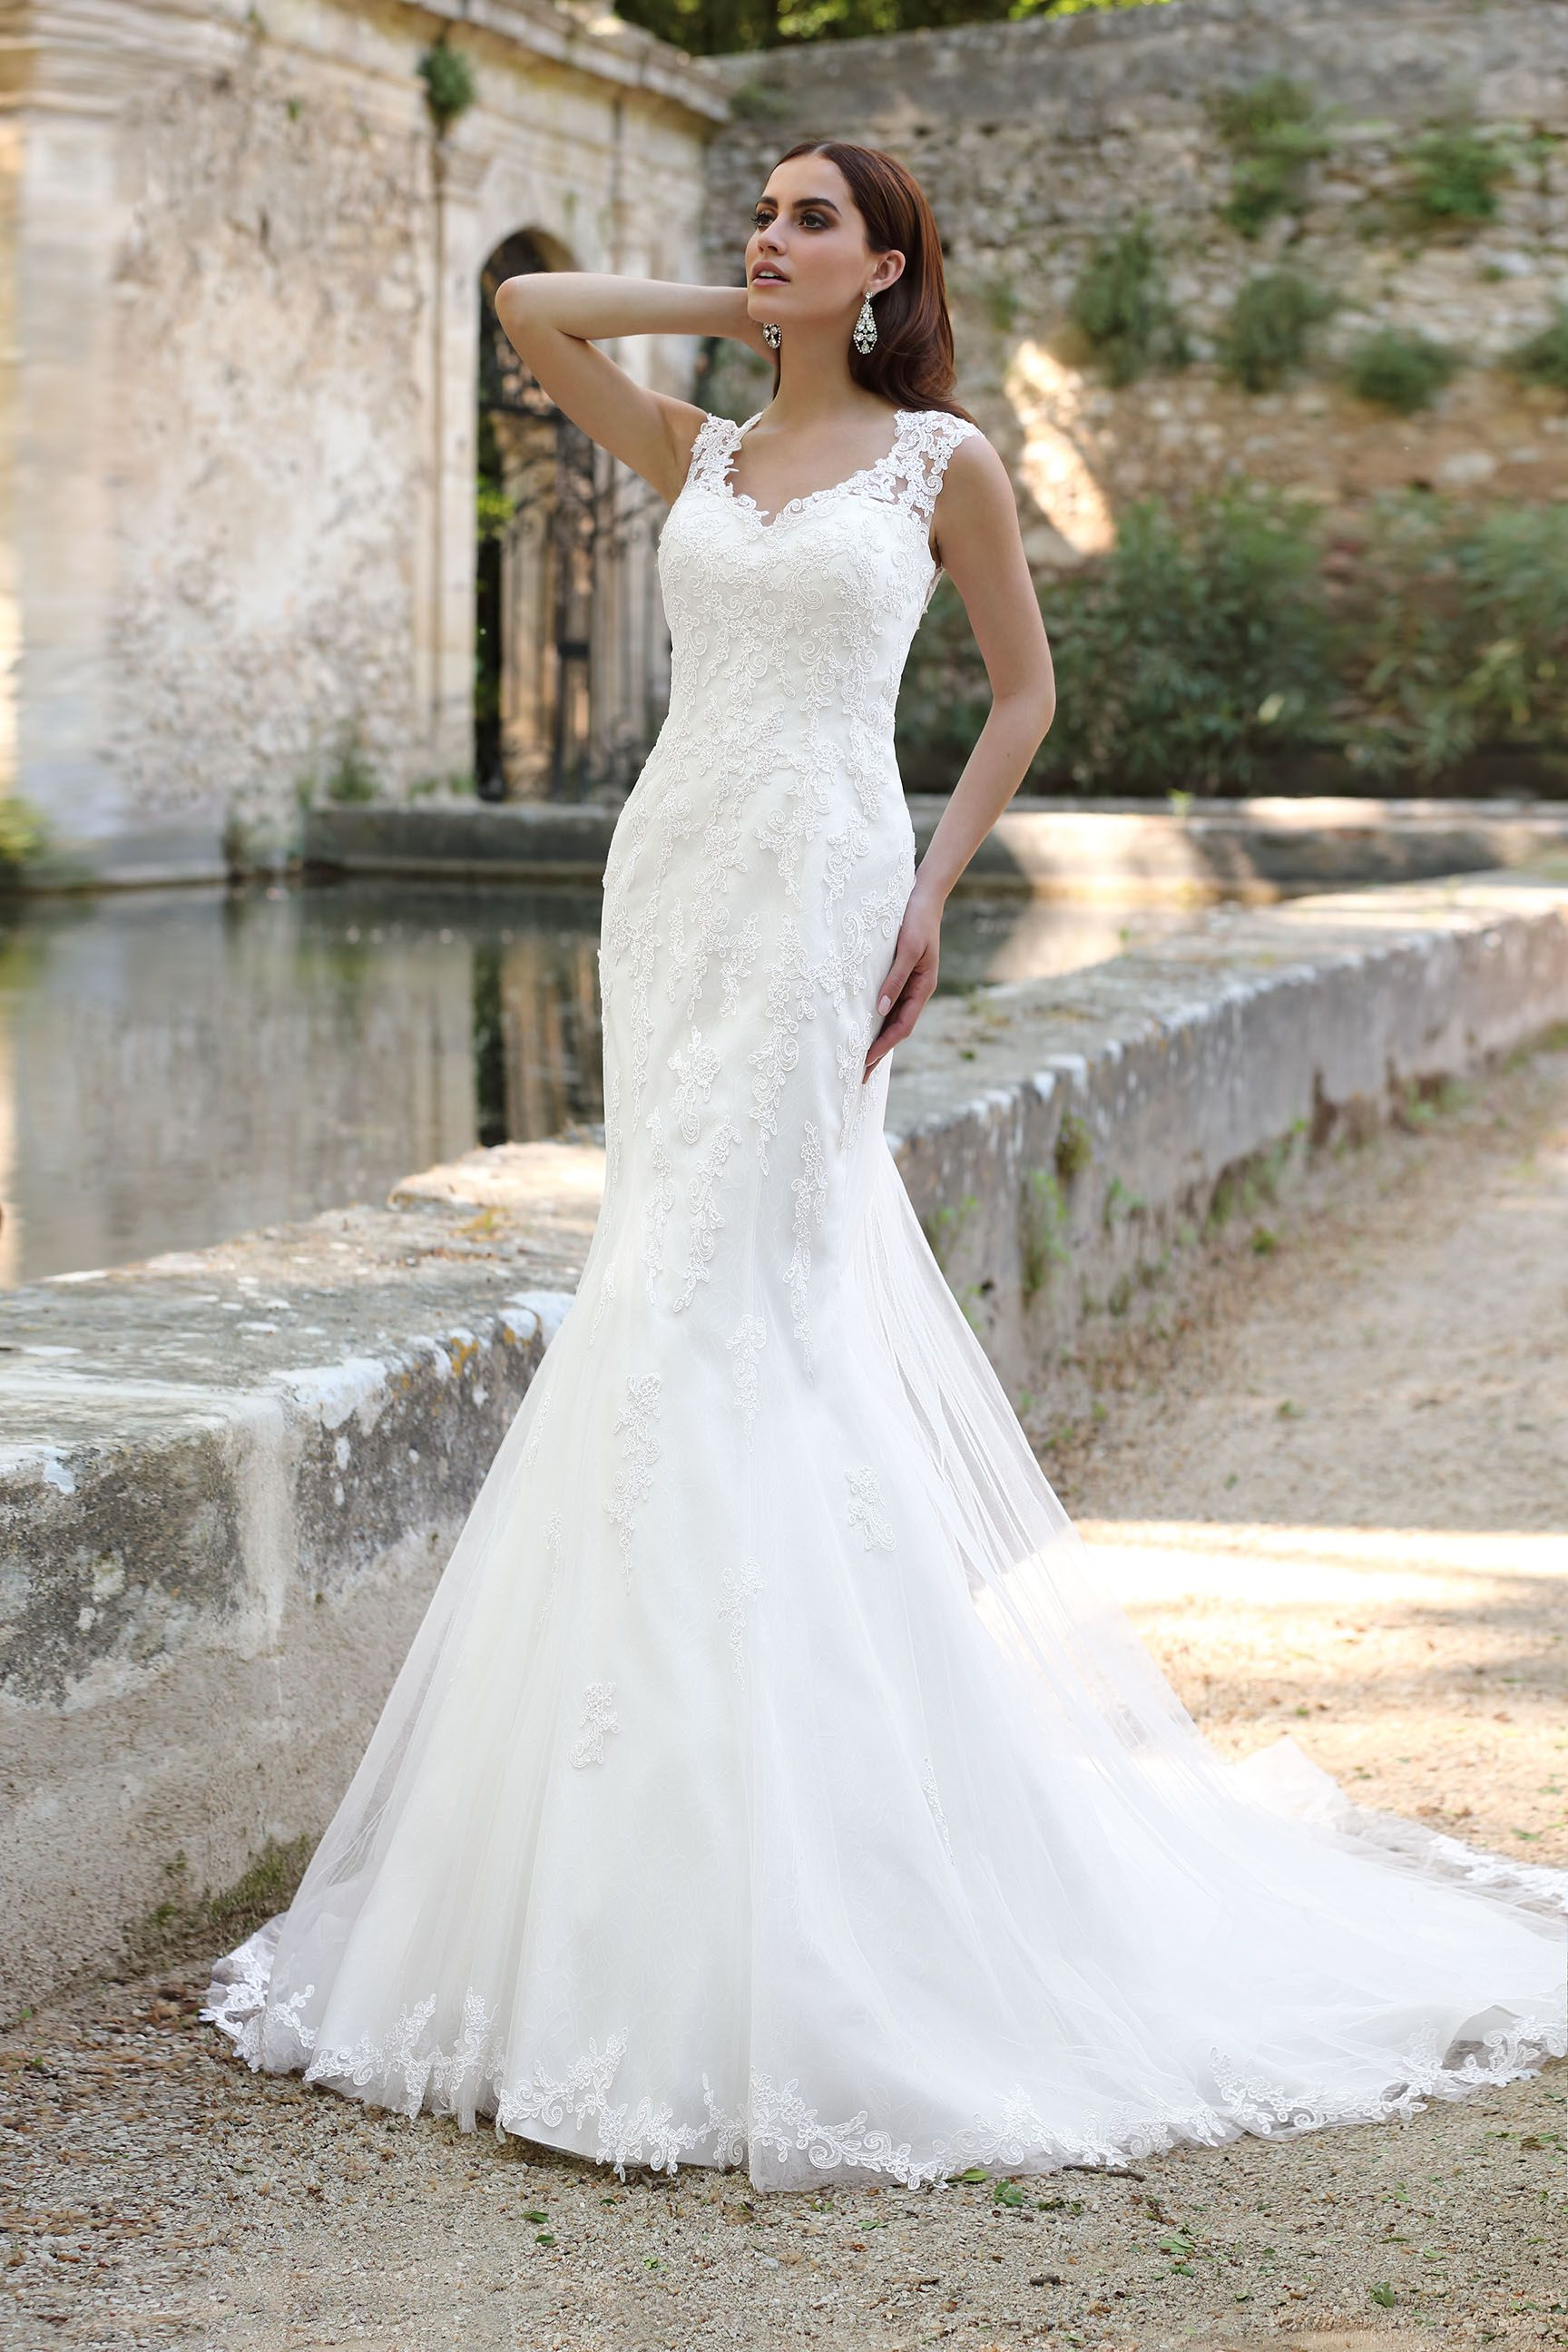 Emma Charlotte bridal collection | Gelinlikler | Pinterest | Bridal ...